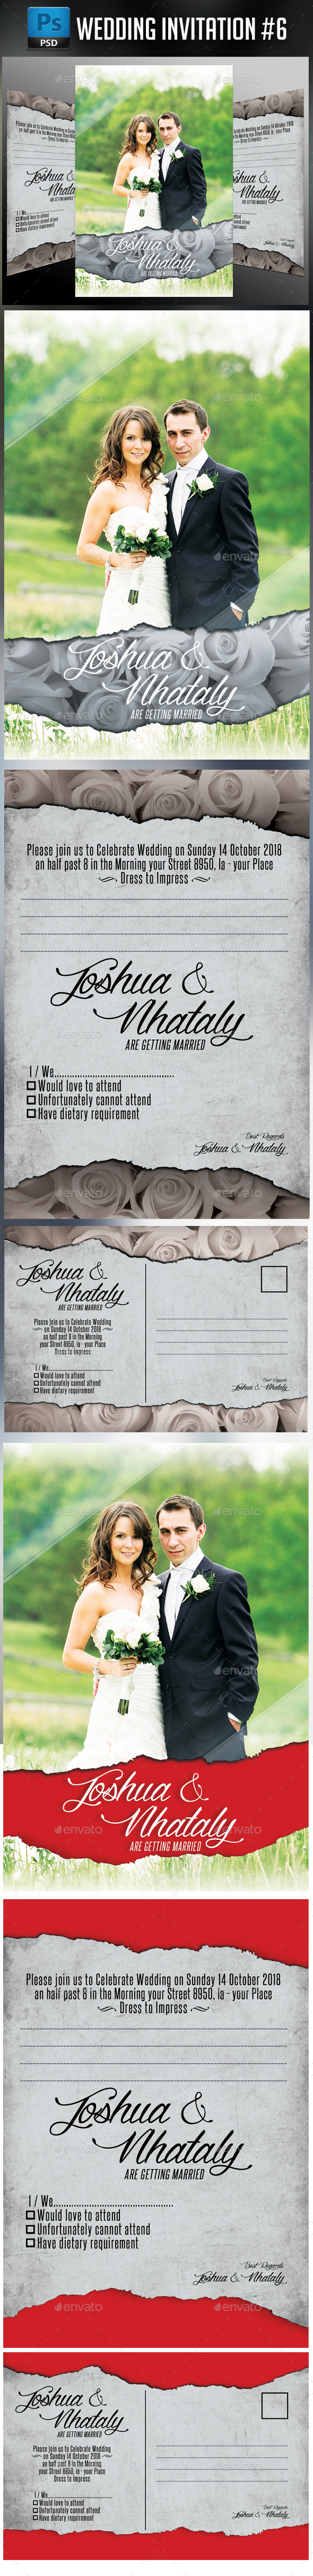 Wedding Invitation #6 - Weddings Cards & Invites